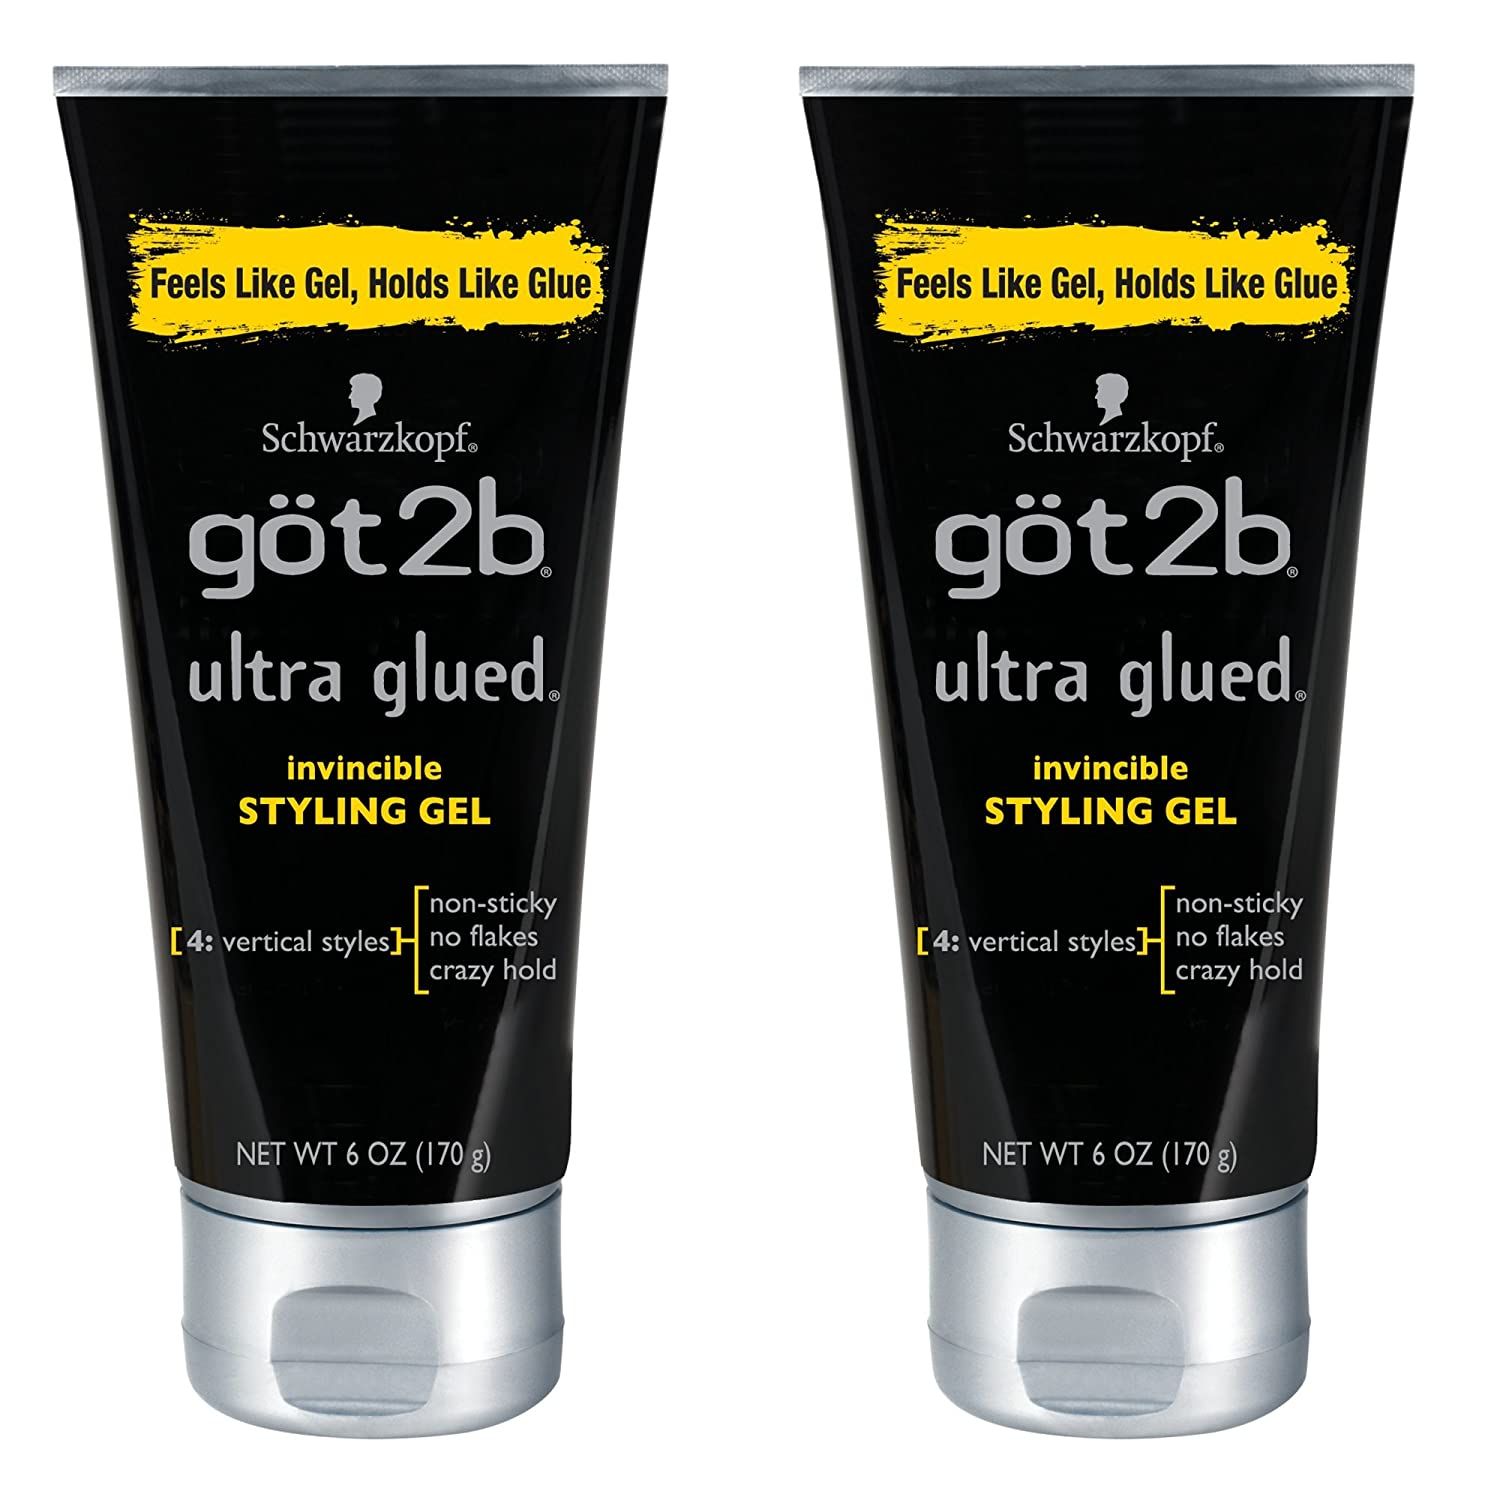 Got2b Ultra Glued Invincible Styling Hair Gel, 6 Ounces (Pack of 2) four21-five02-jooi218